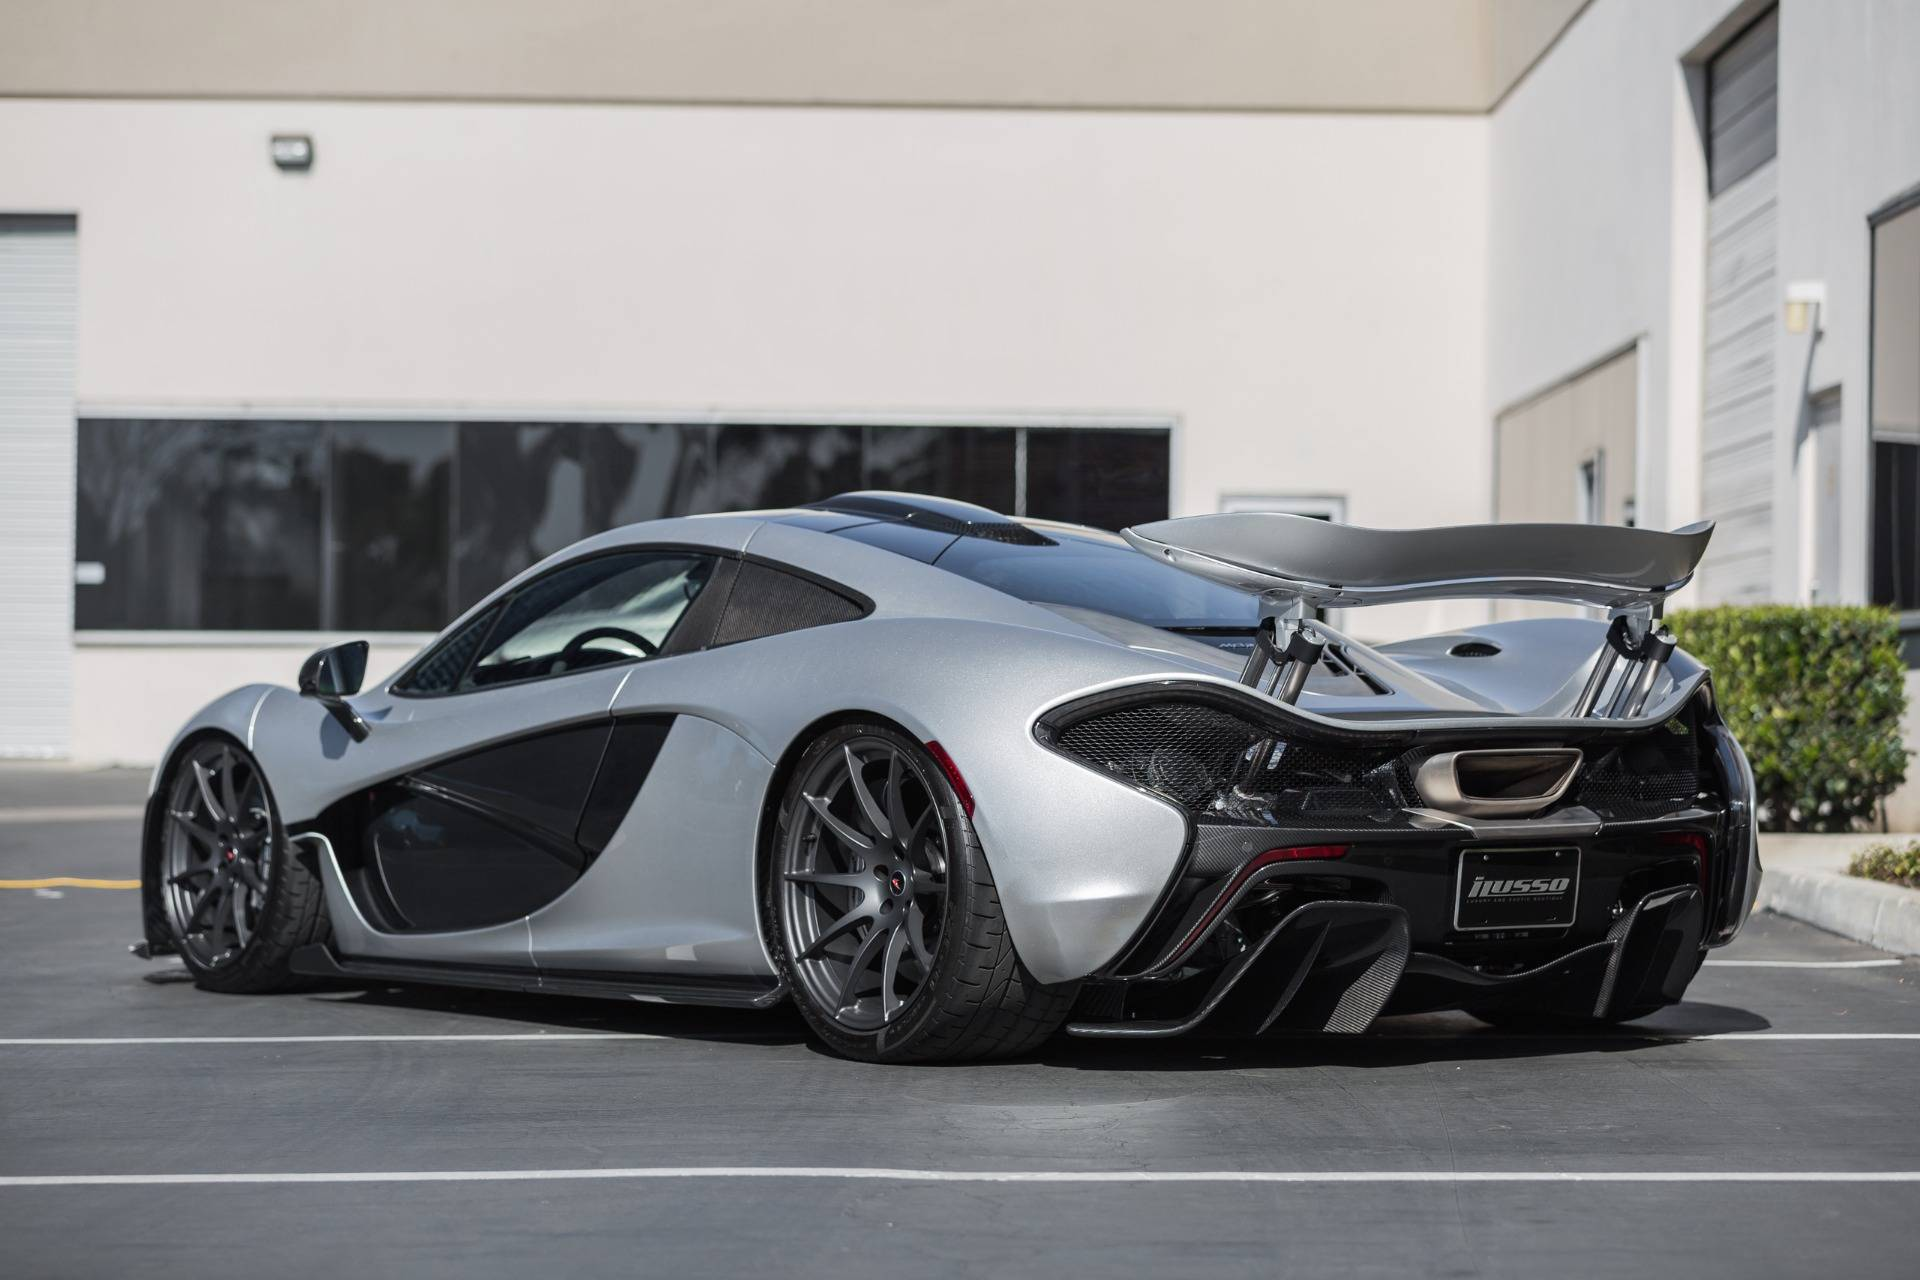 Mclaren Price 2017 >> Supernova Silver McLaren P1 for Sale in the US at $2,399,000 - GTspirit